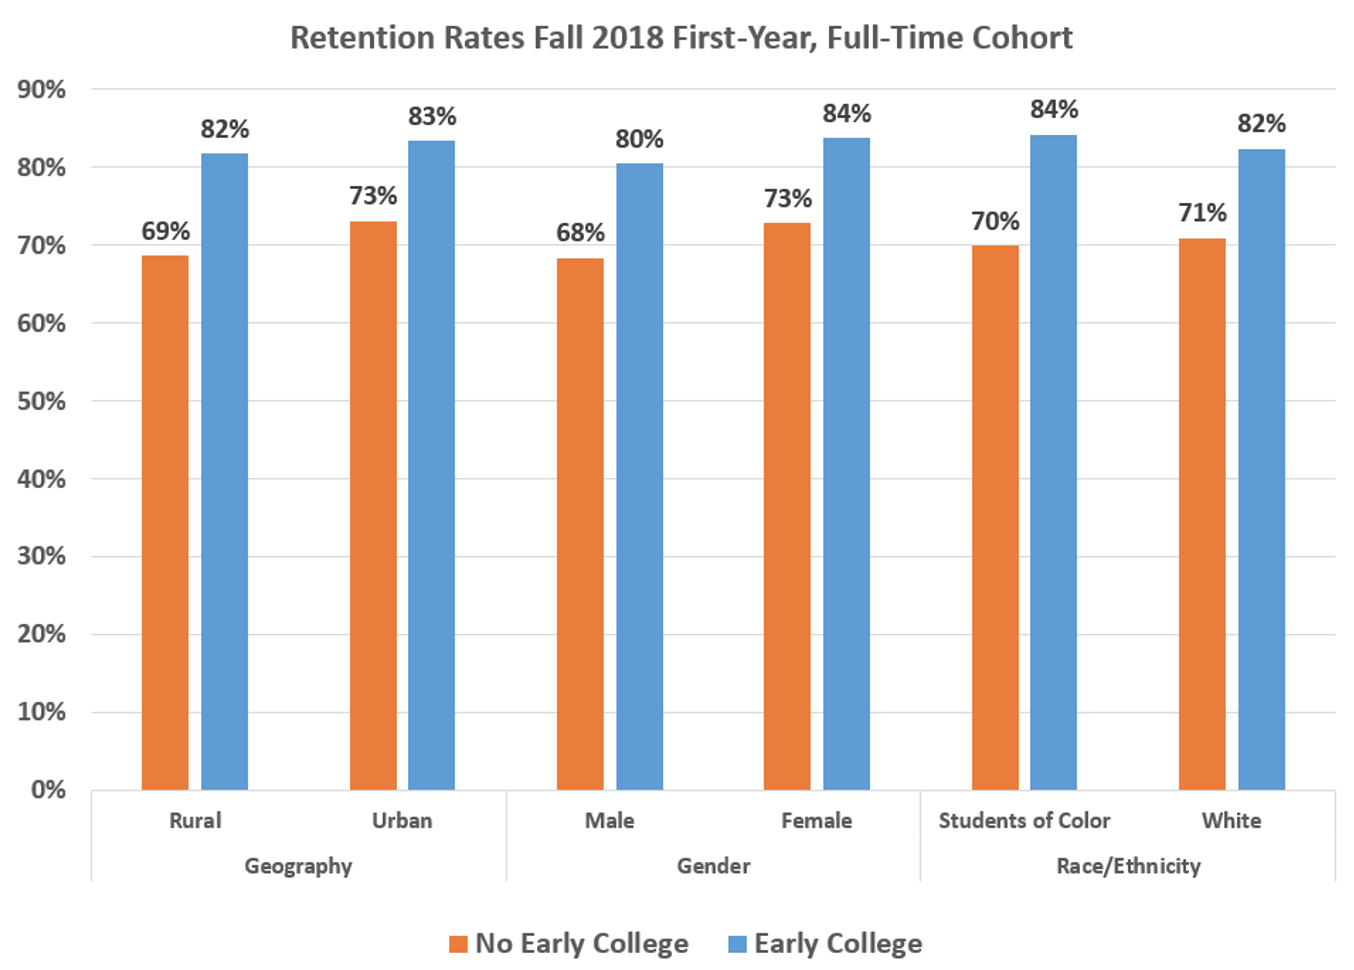 retention rates fall 2018 first year, full time cohort bar graph - text-only description in